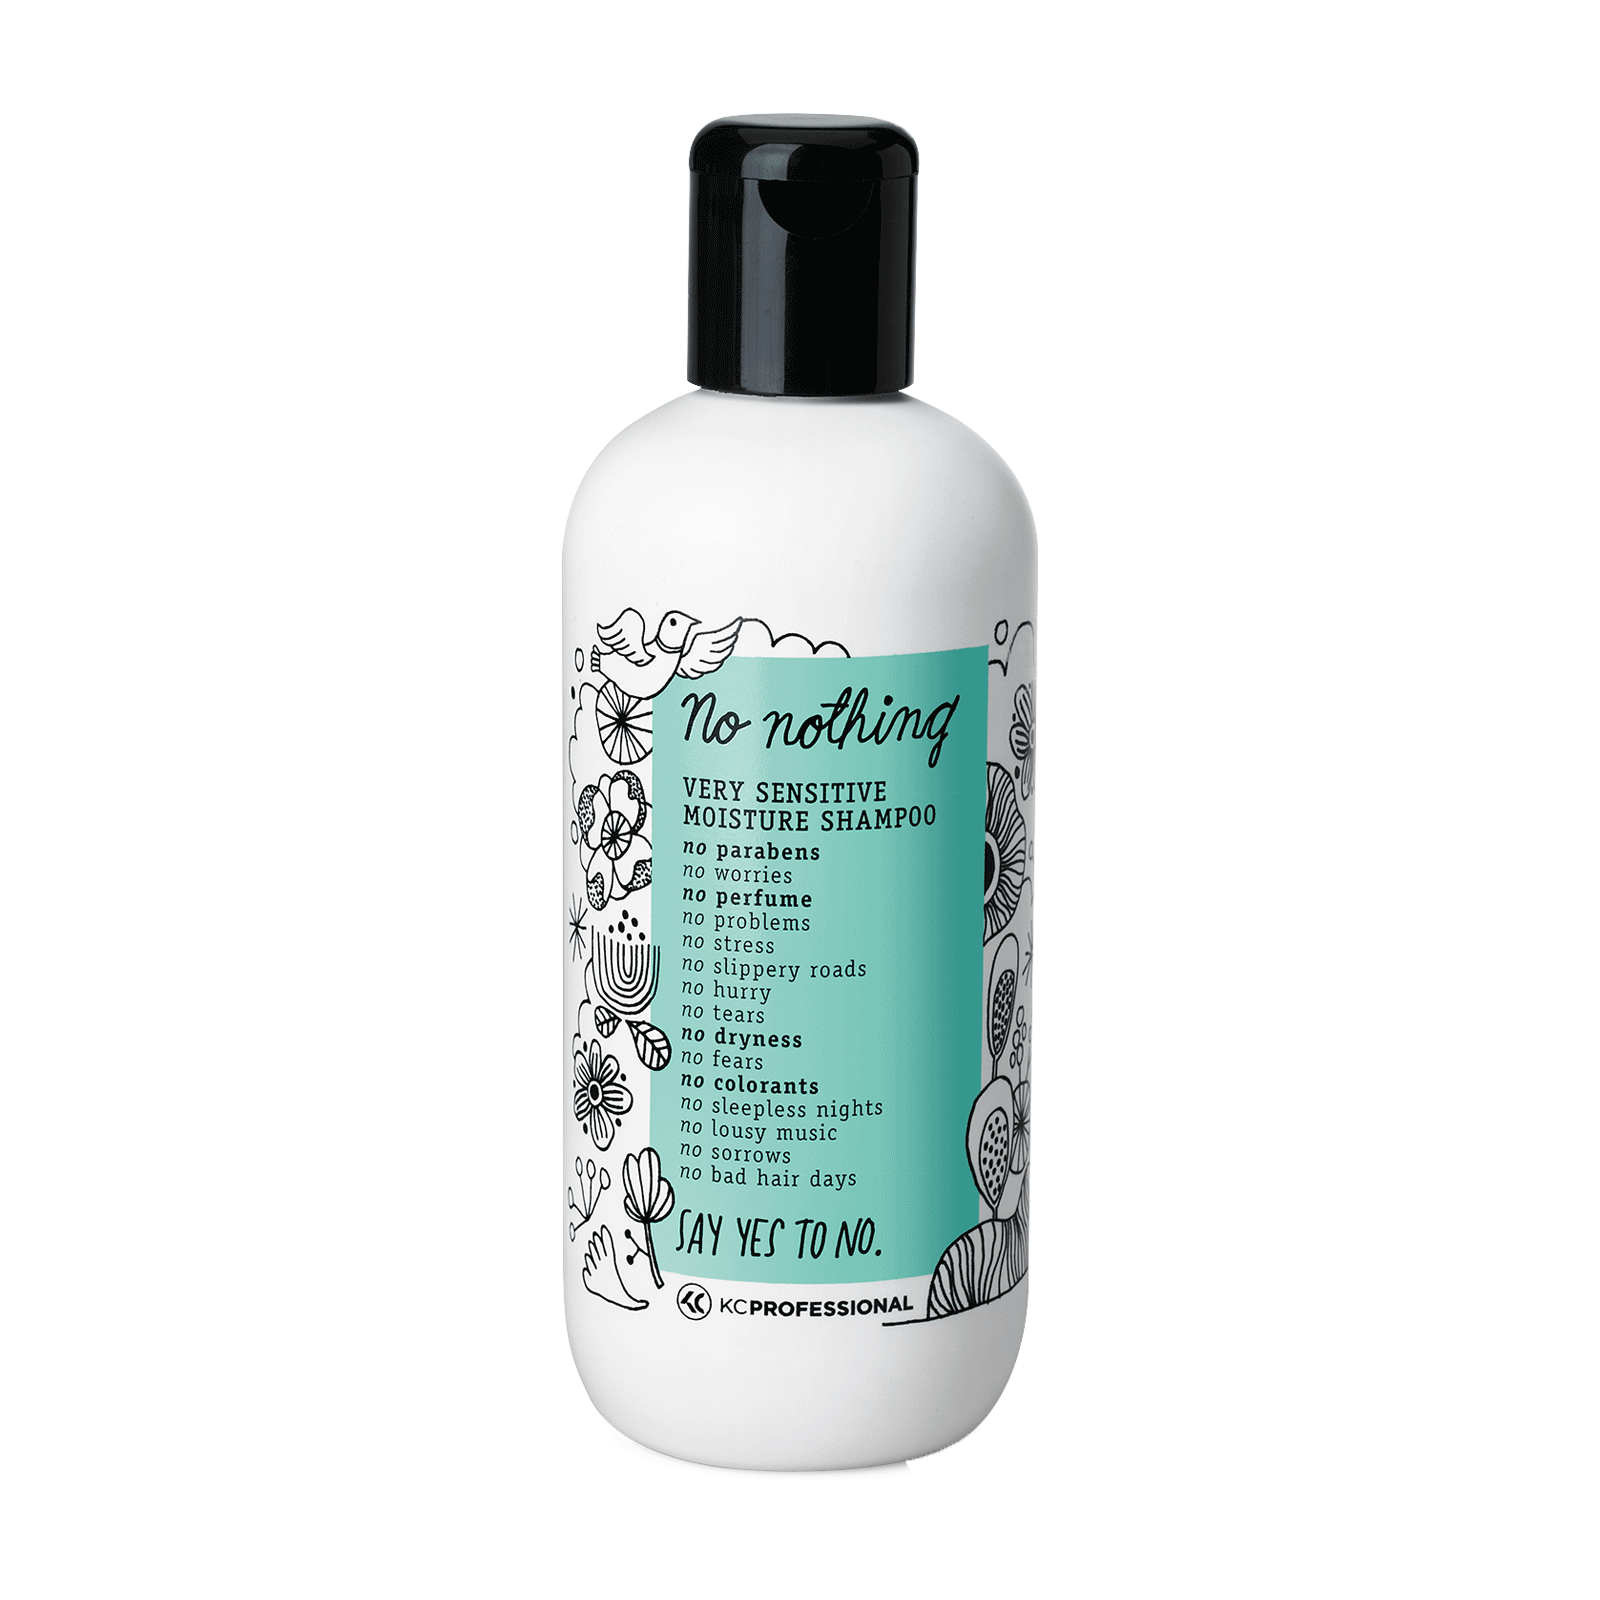 Very Sensitive Moisture Shampoo